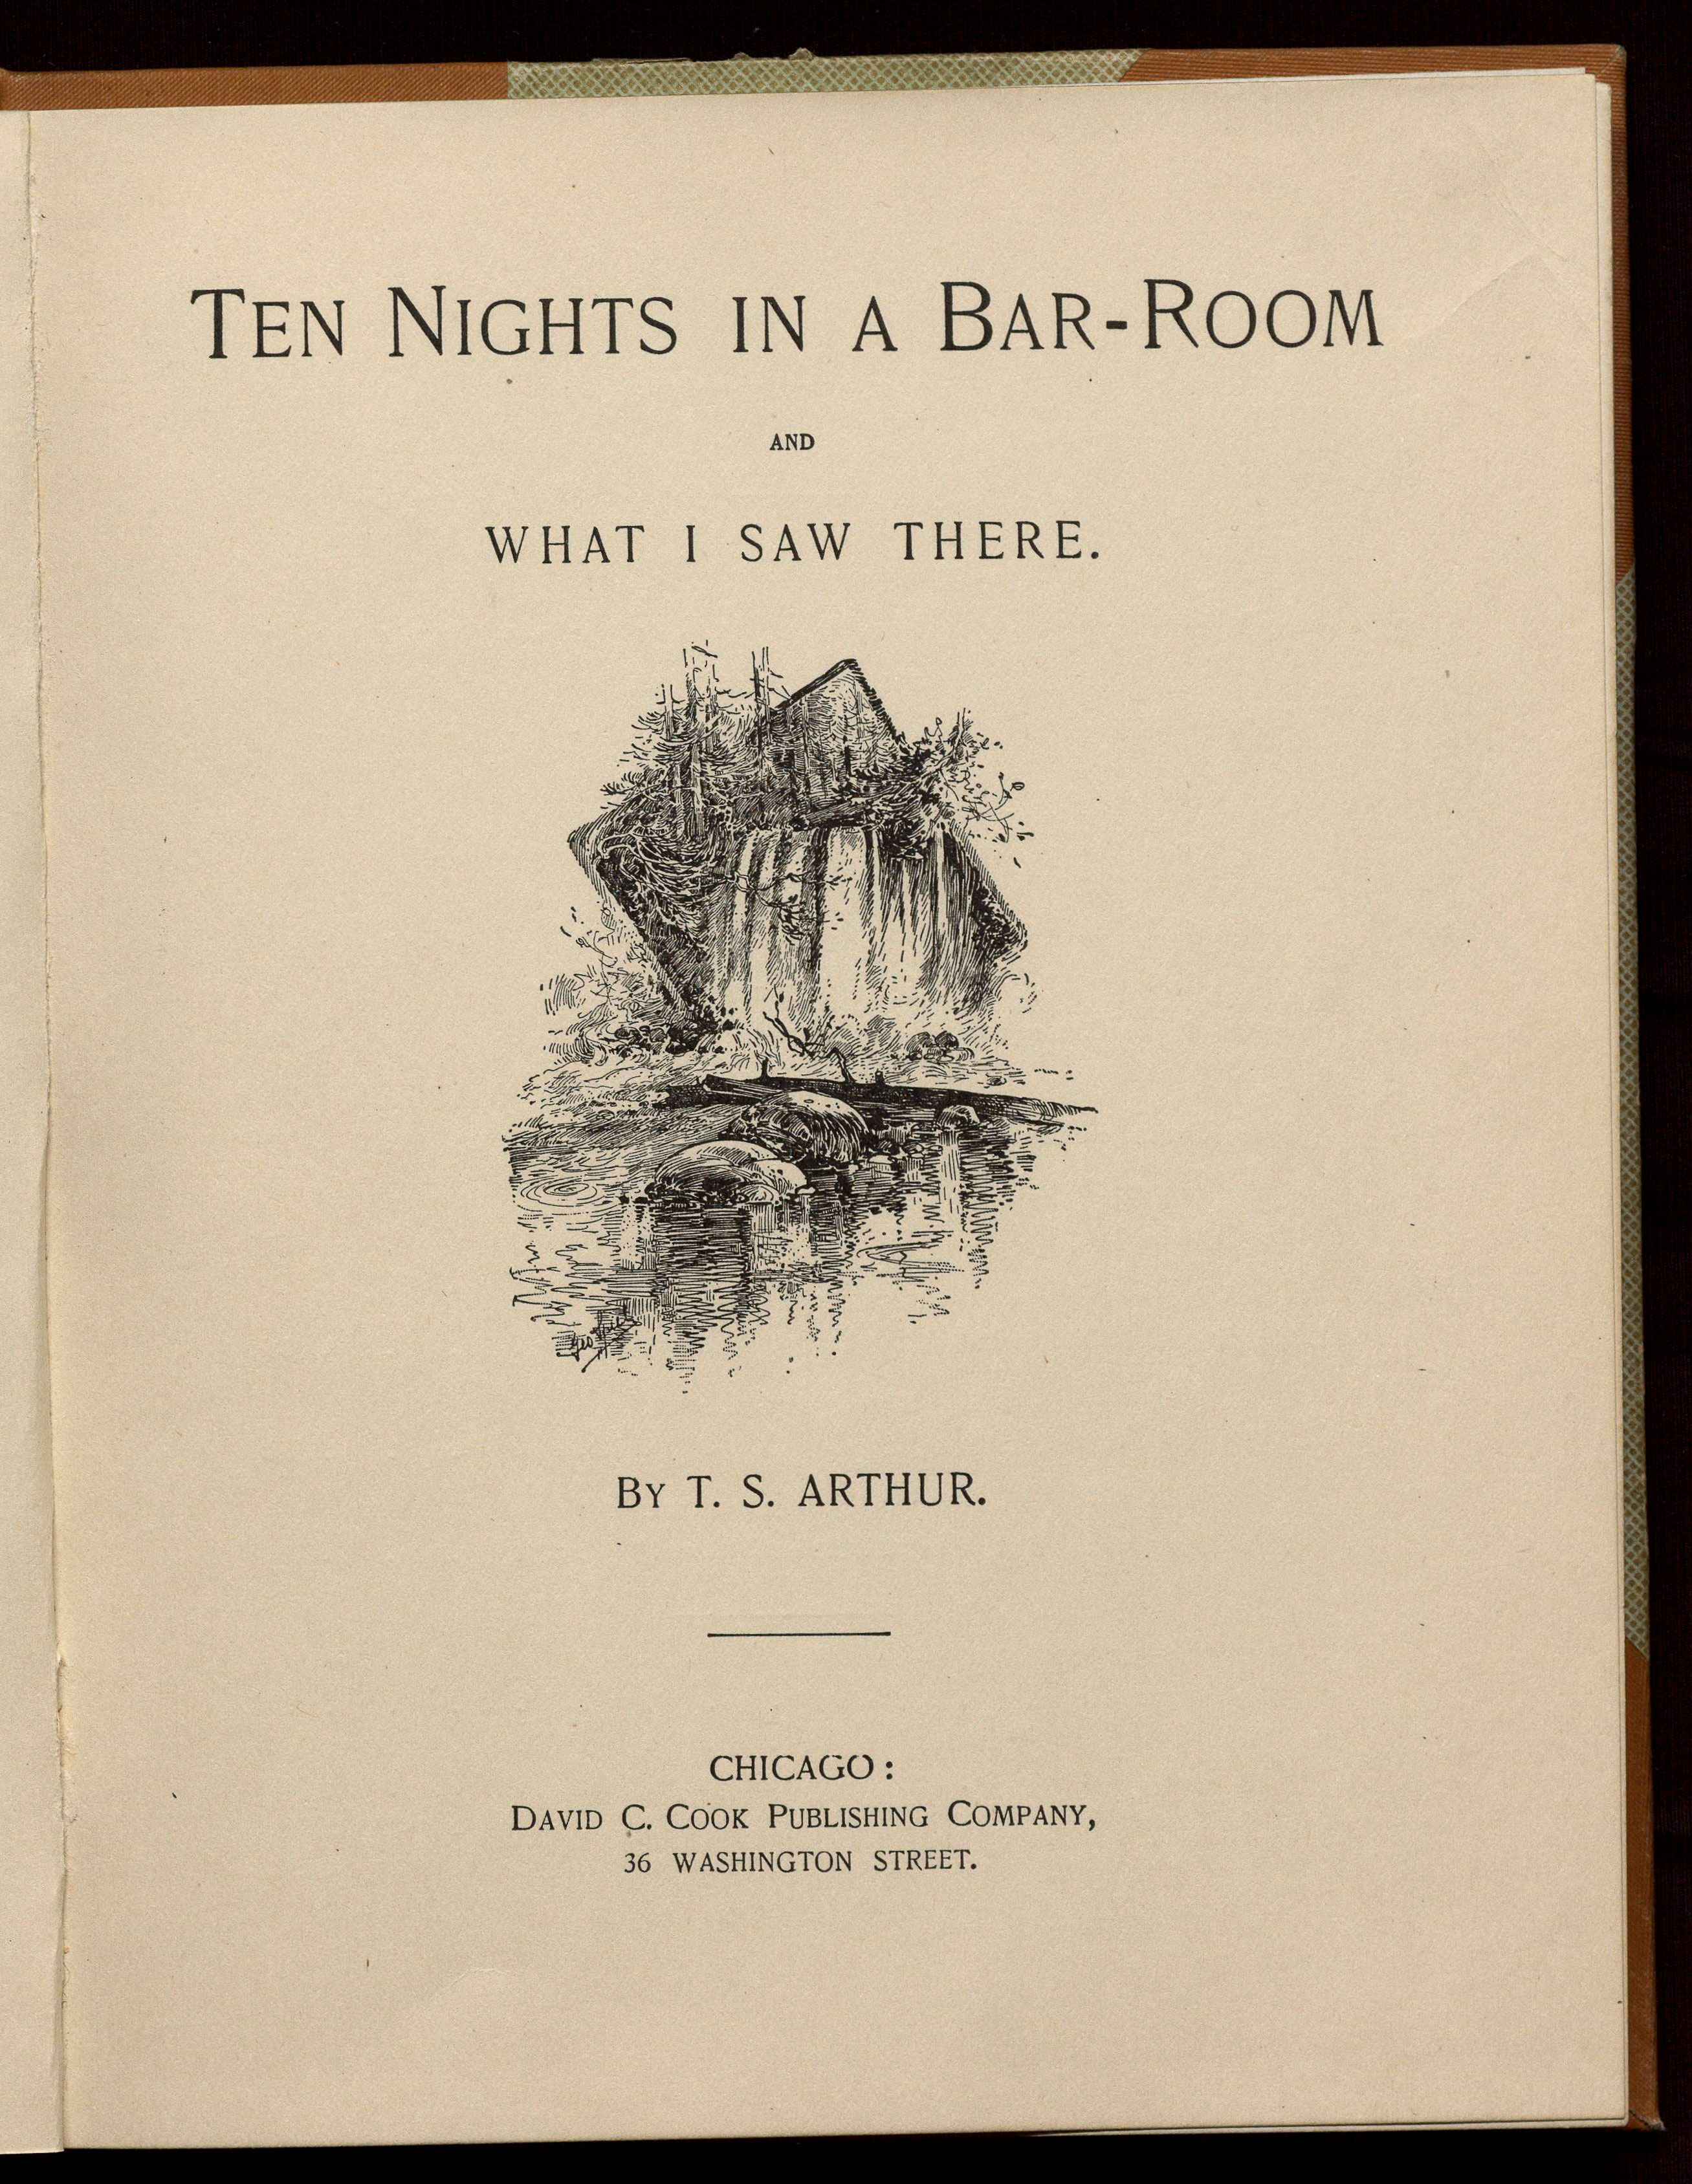 Ten nights in a bar-room and what I saw there, 1898, © Material sourced from the University of Michigan